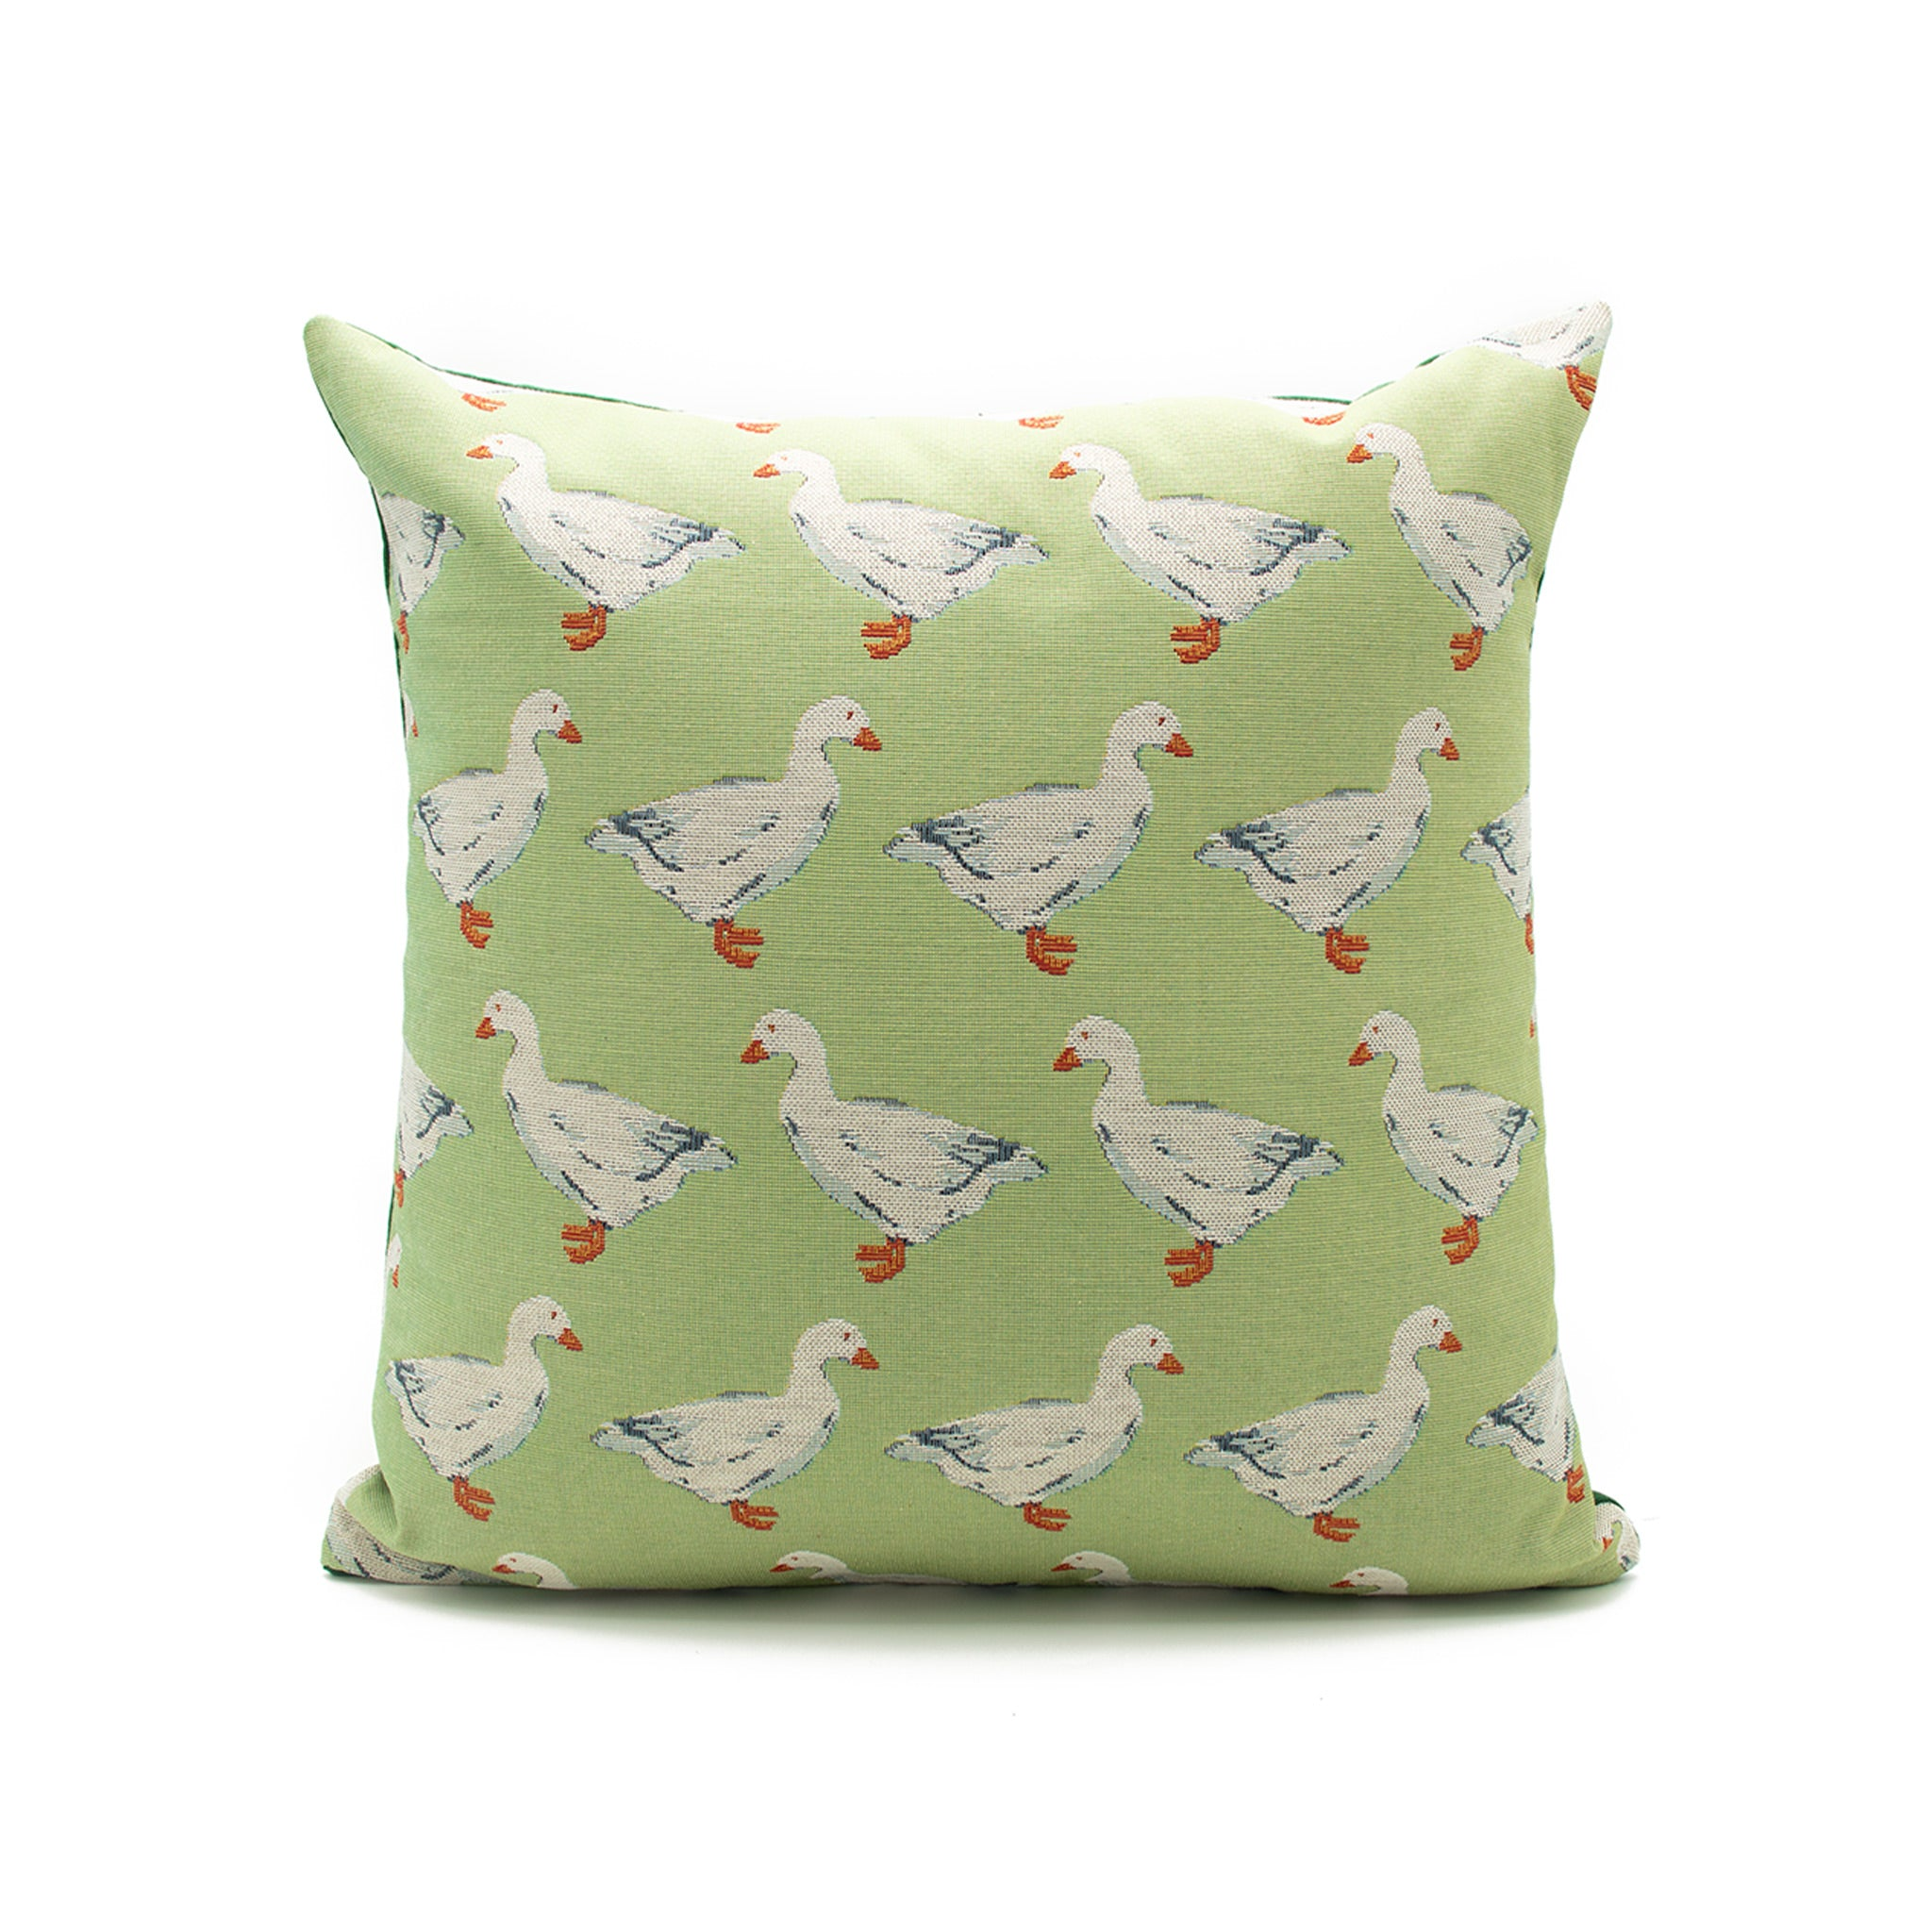 Waddling ducks cushion